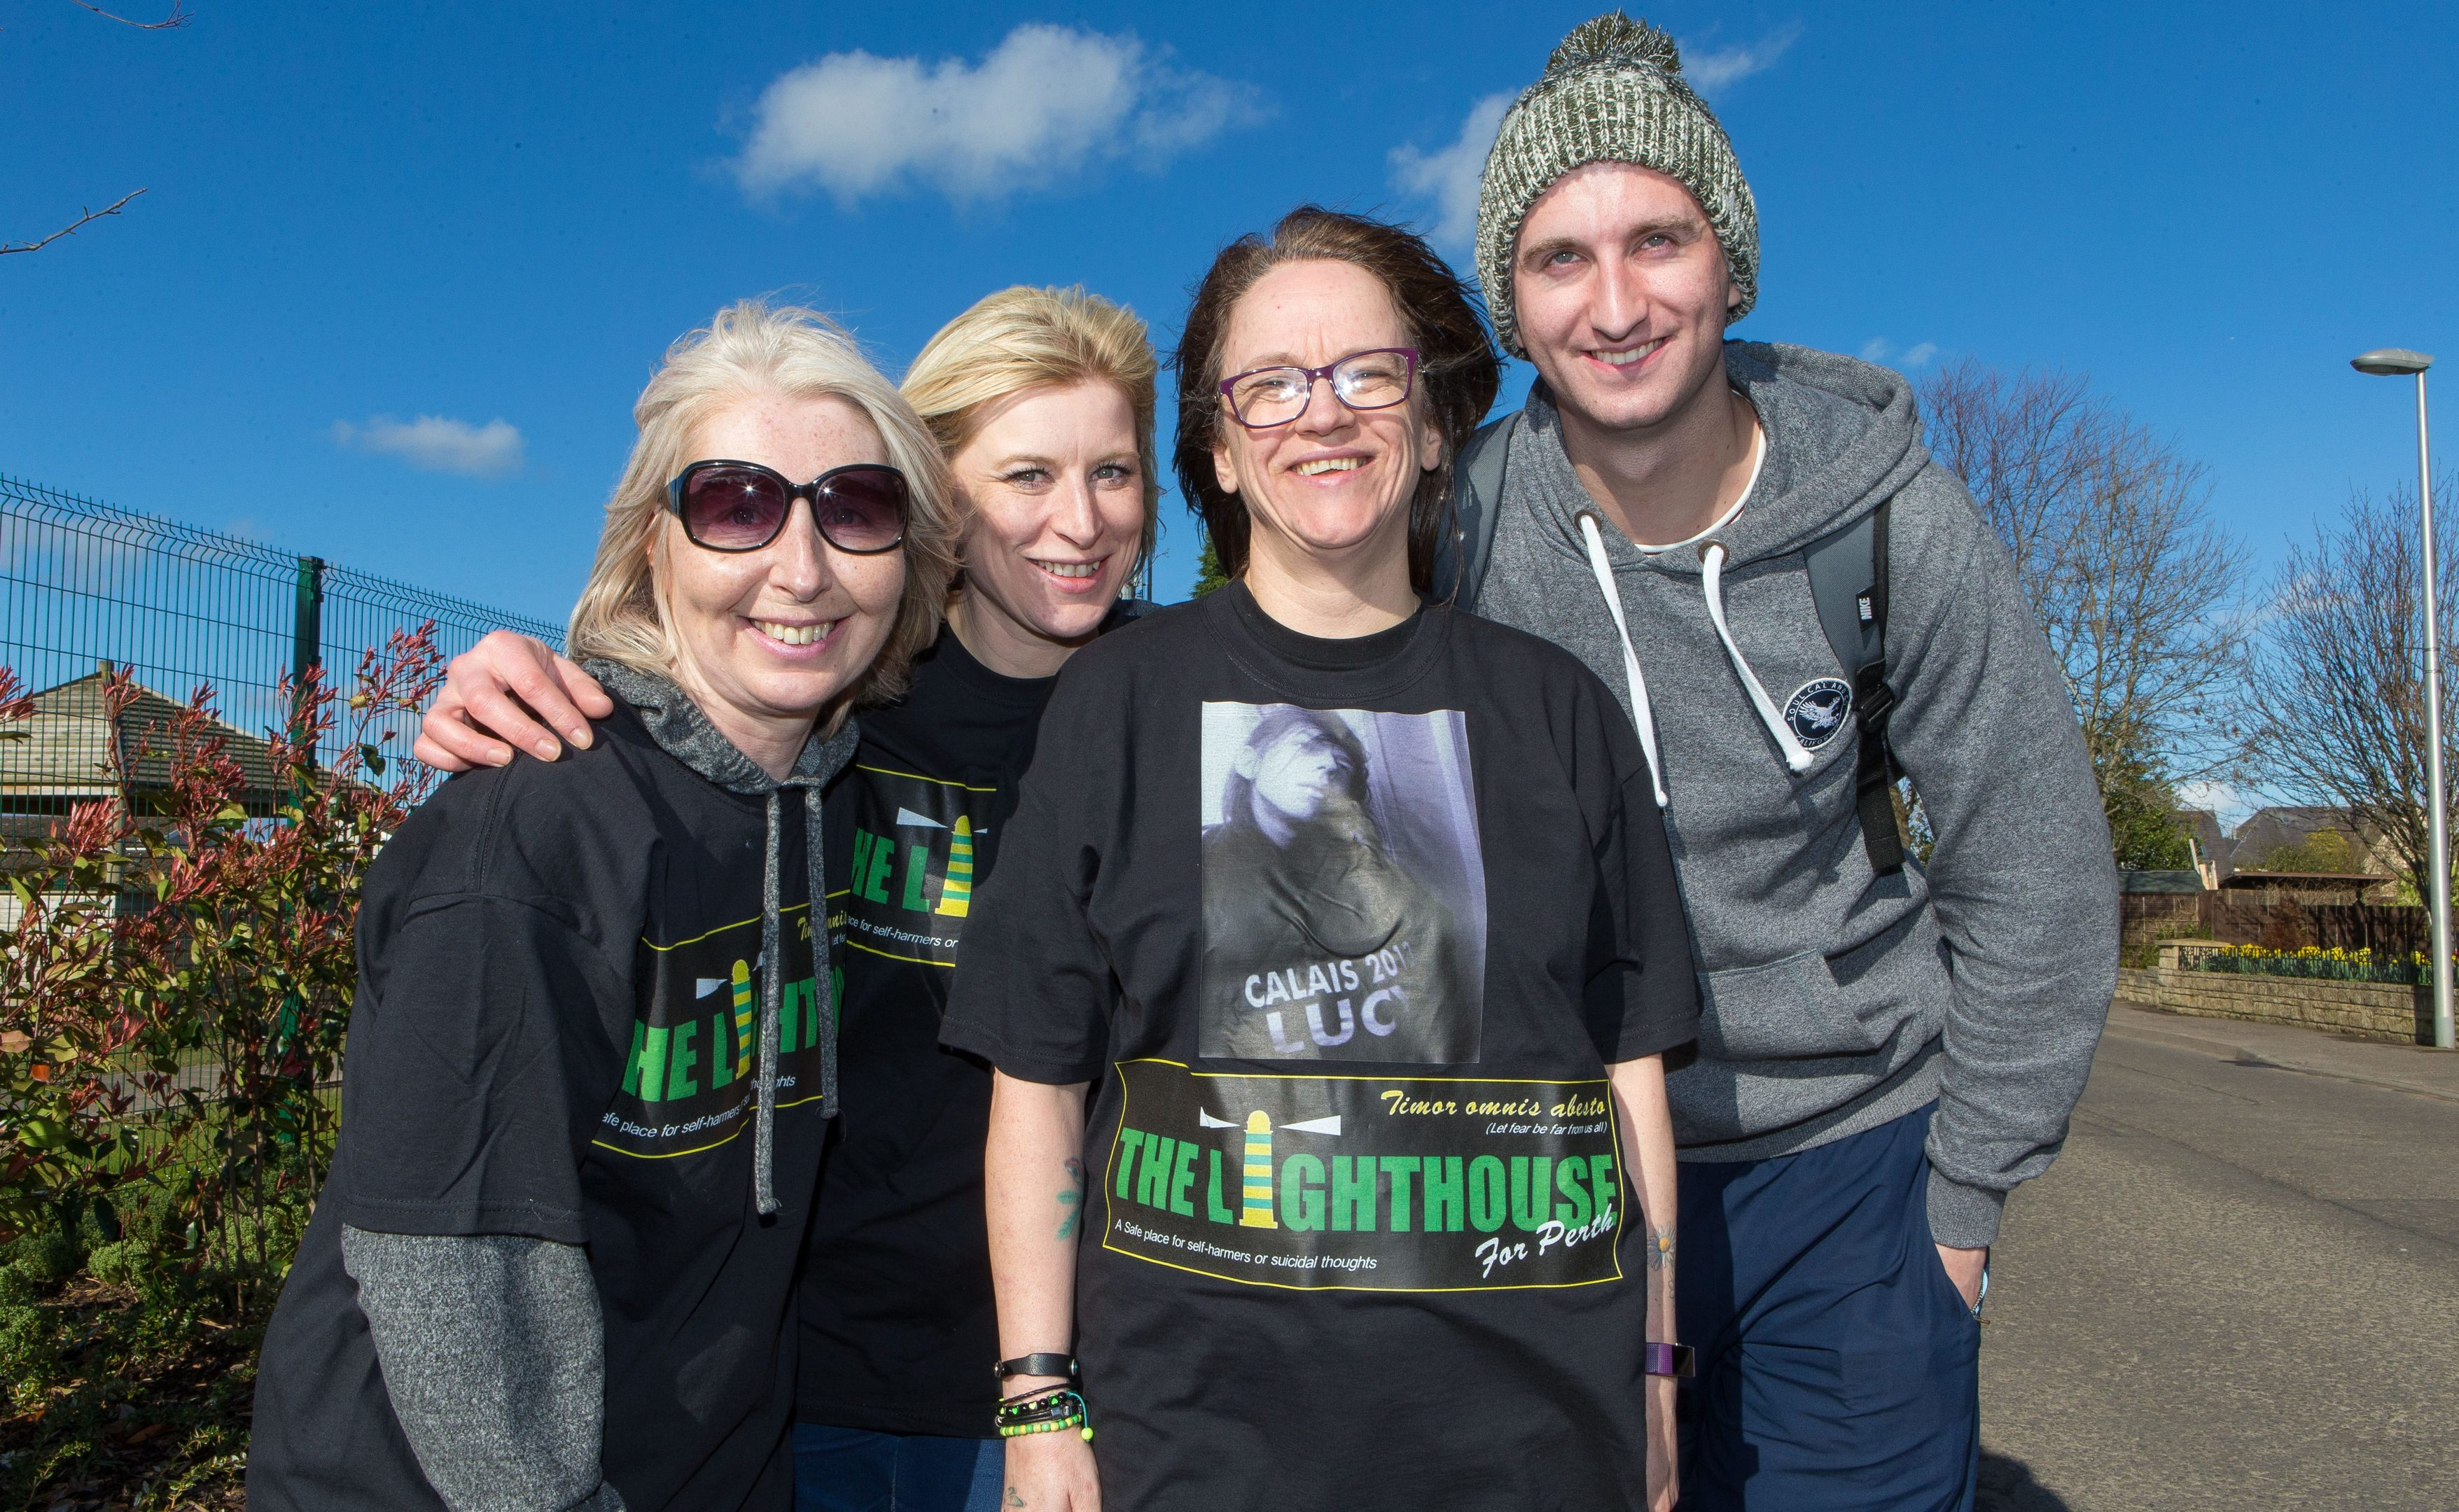 Gwen Buchan (second from left) with friends Lorna Duthie, Lisa Cassidy and Fraser Belford at Errol during their walk.